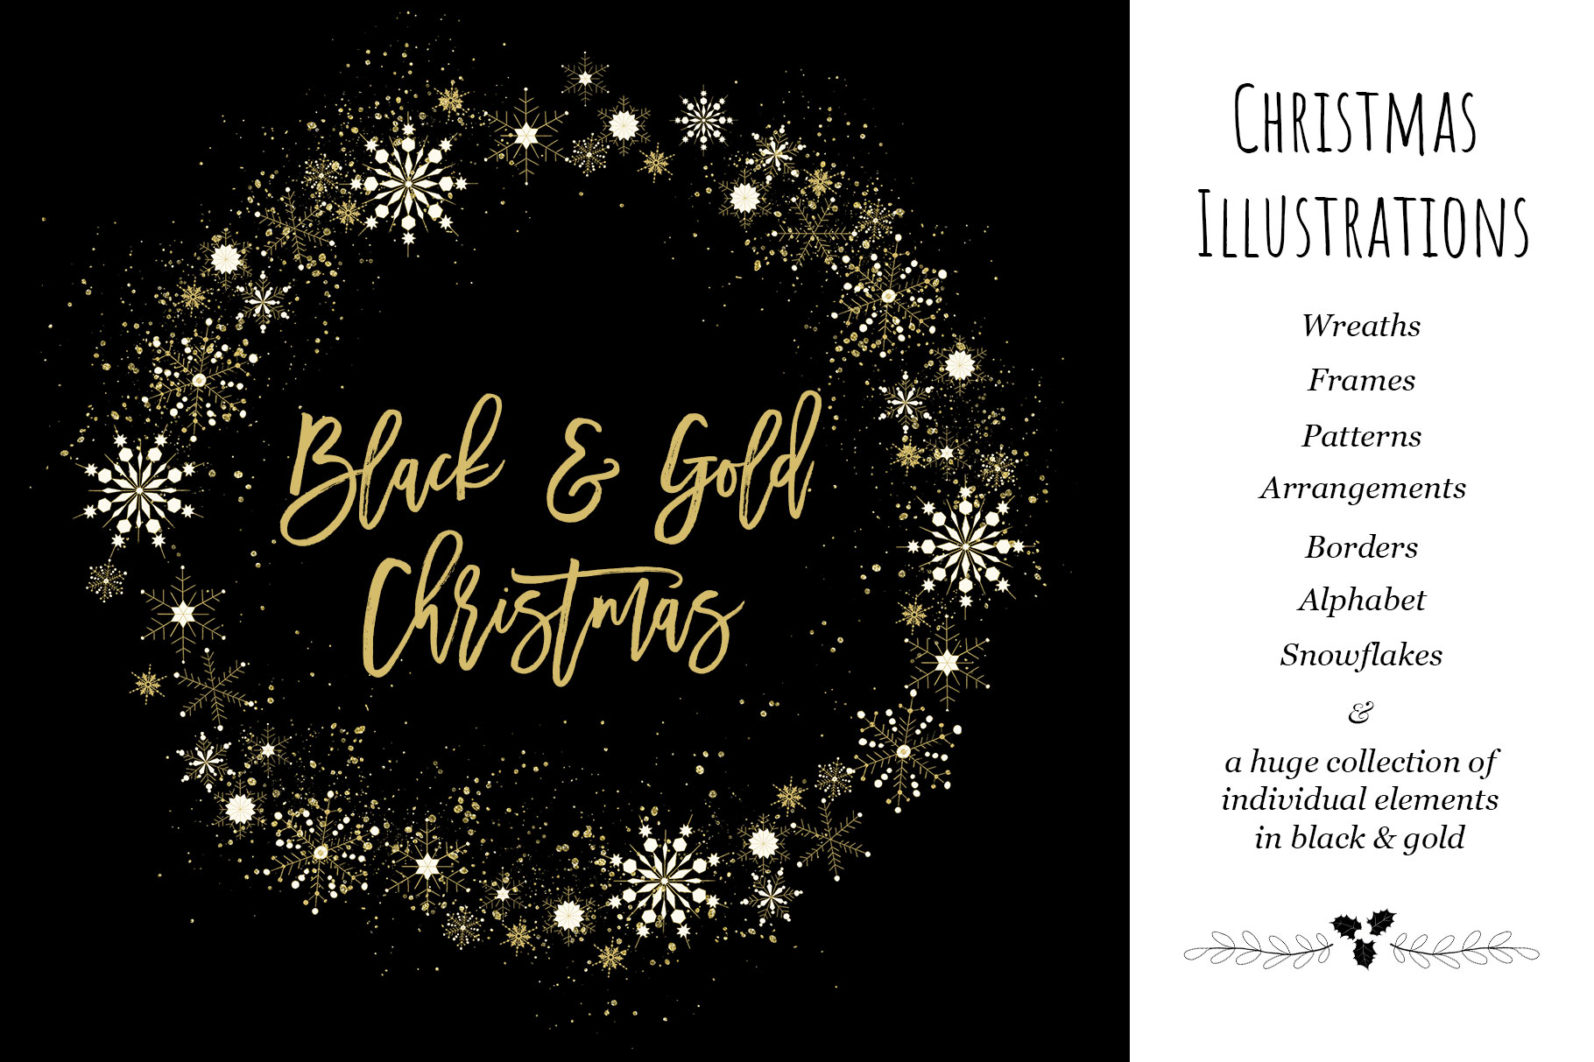 Black & Gold Christmas - chirstmas black gold title page -